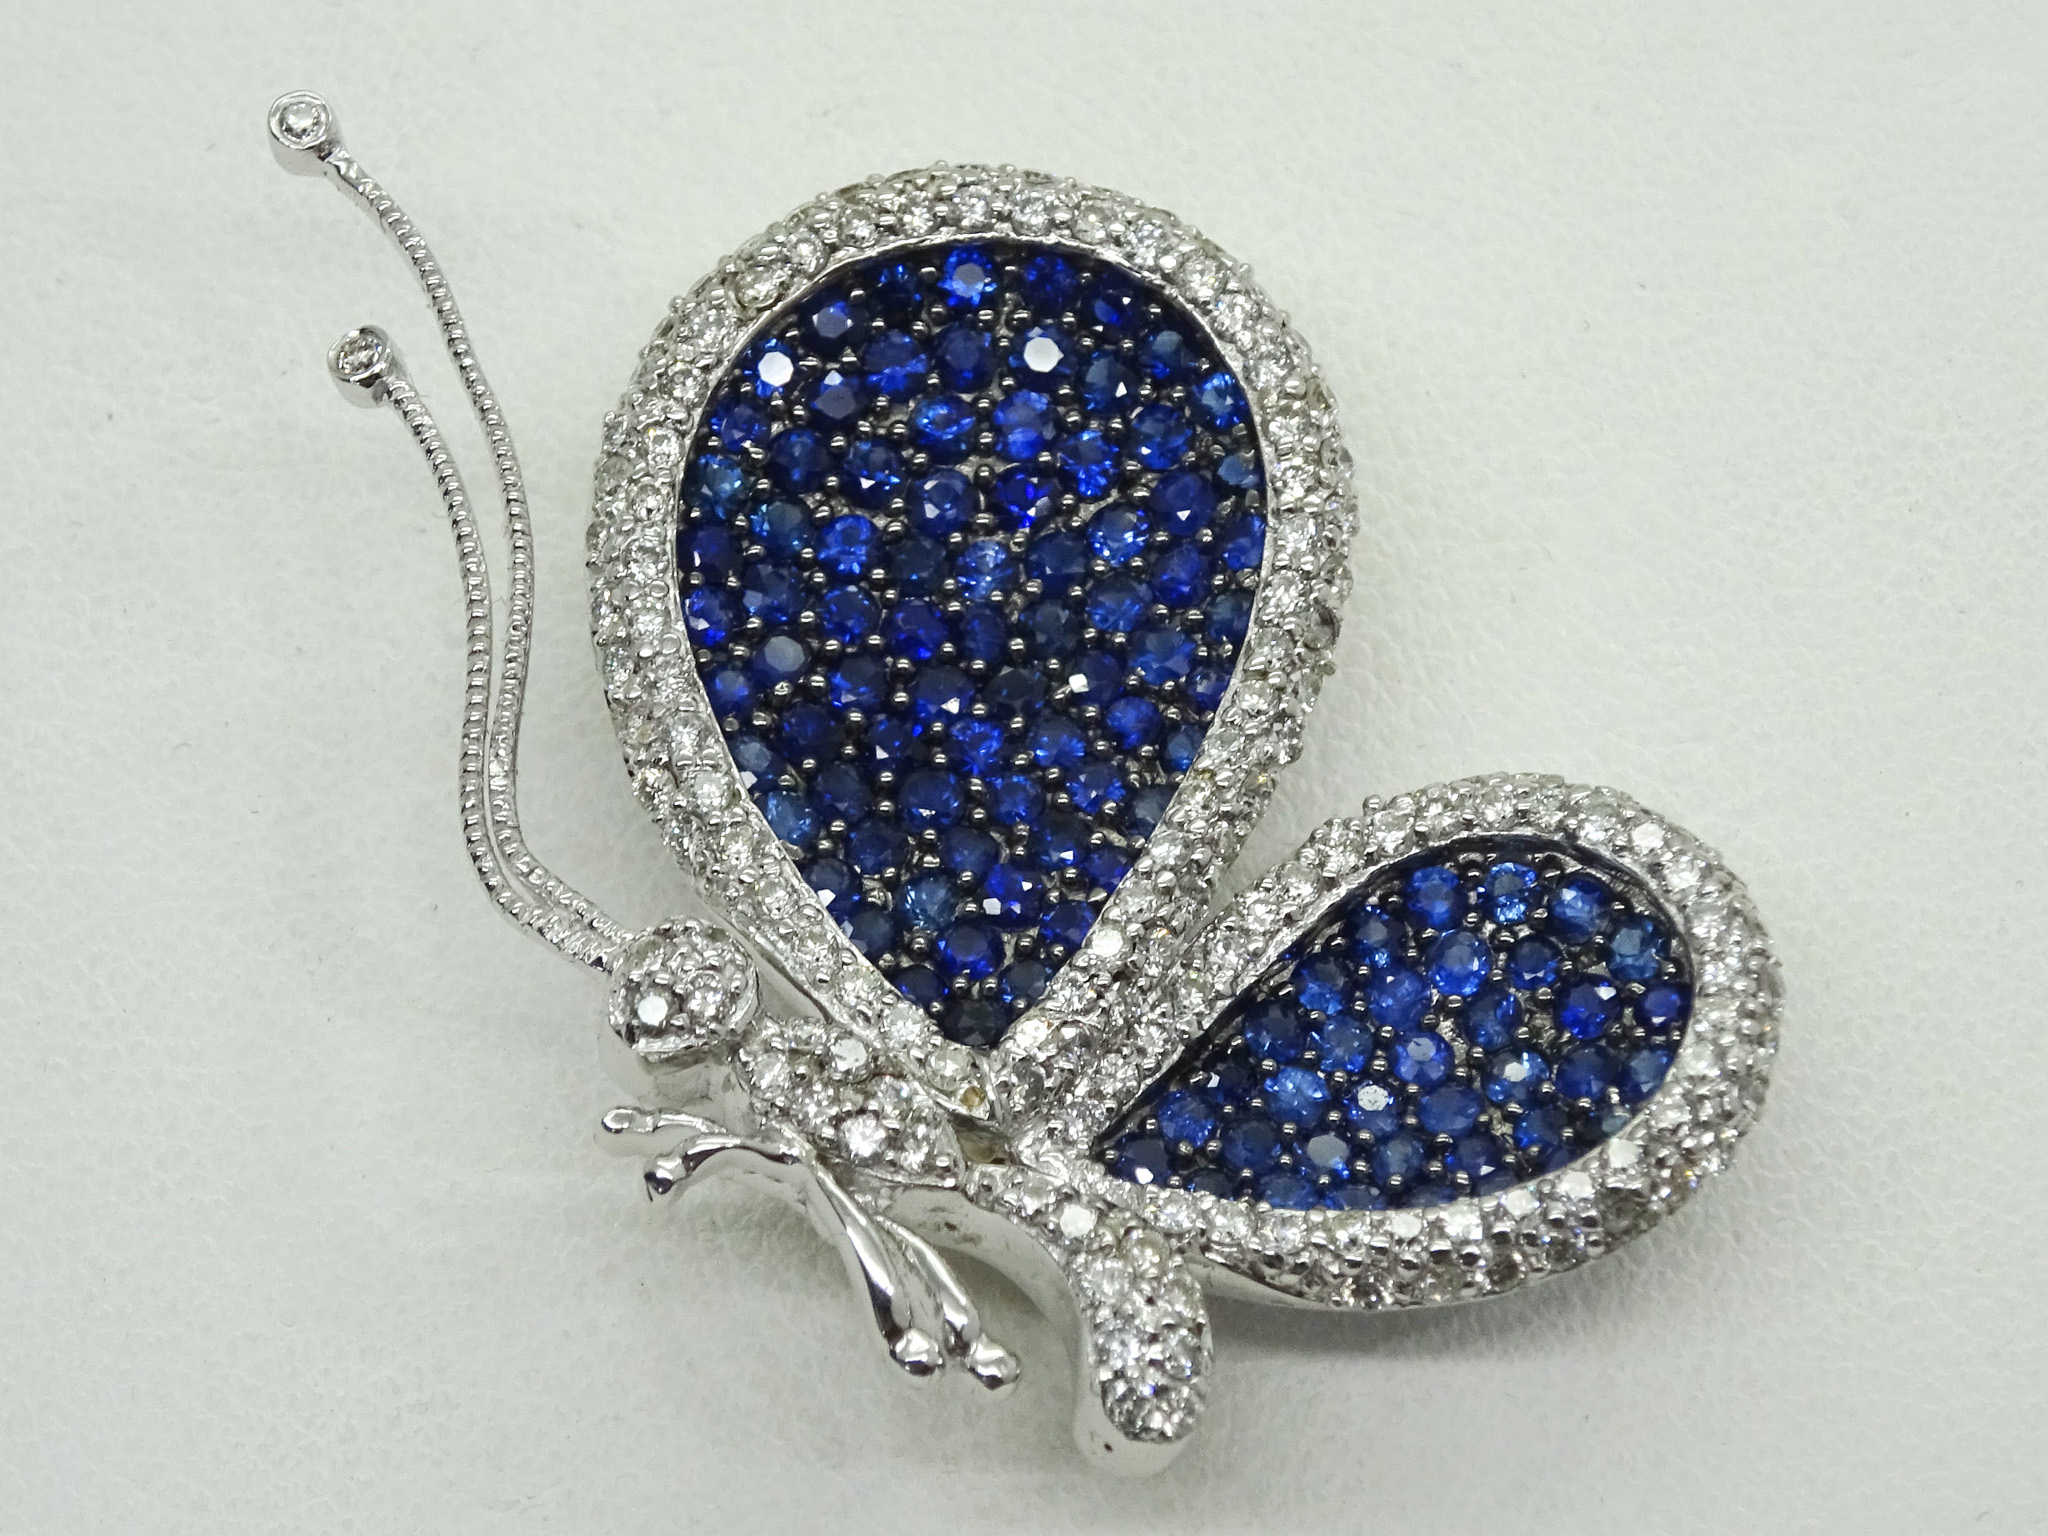 Levian Le Vian 18k Diamond & Blue Sapphire Butterfly Brooch Pin Pendant Throughout 2020 Blue Pavé Butterfly Brooch Necklaces (View 10 of 25)